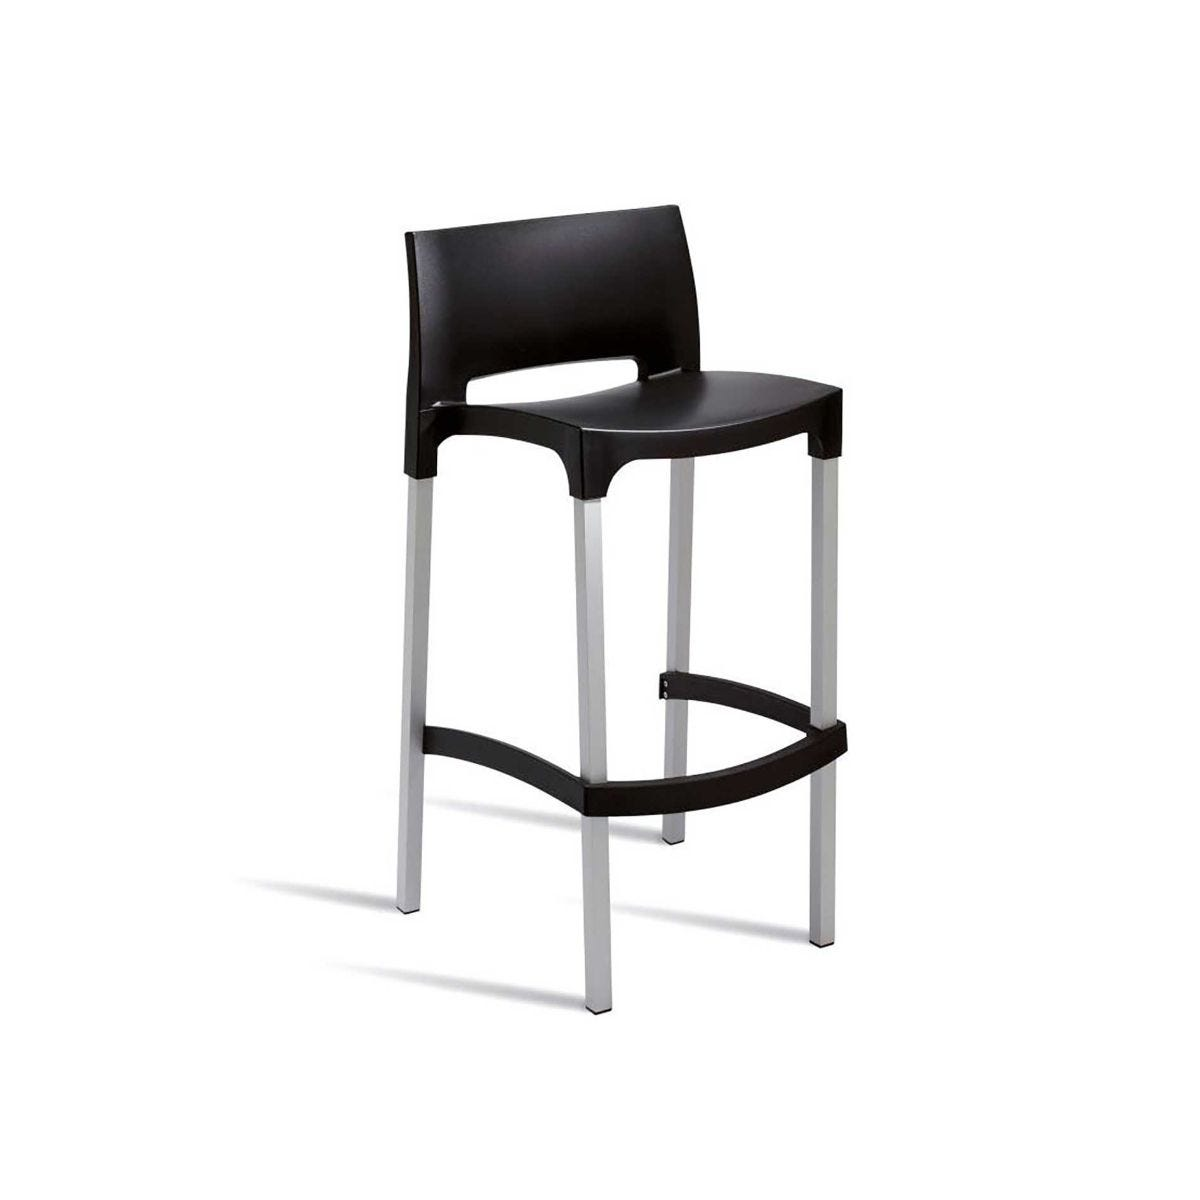 Bud Bar Outdoor Stool, Black